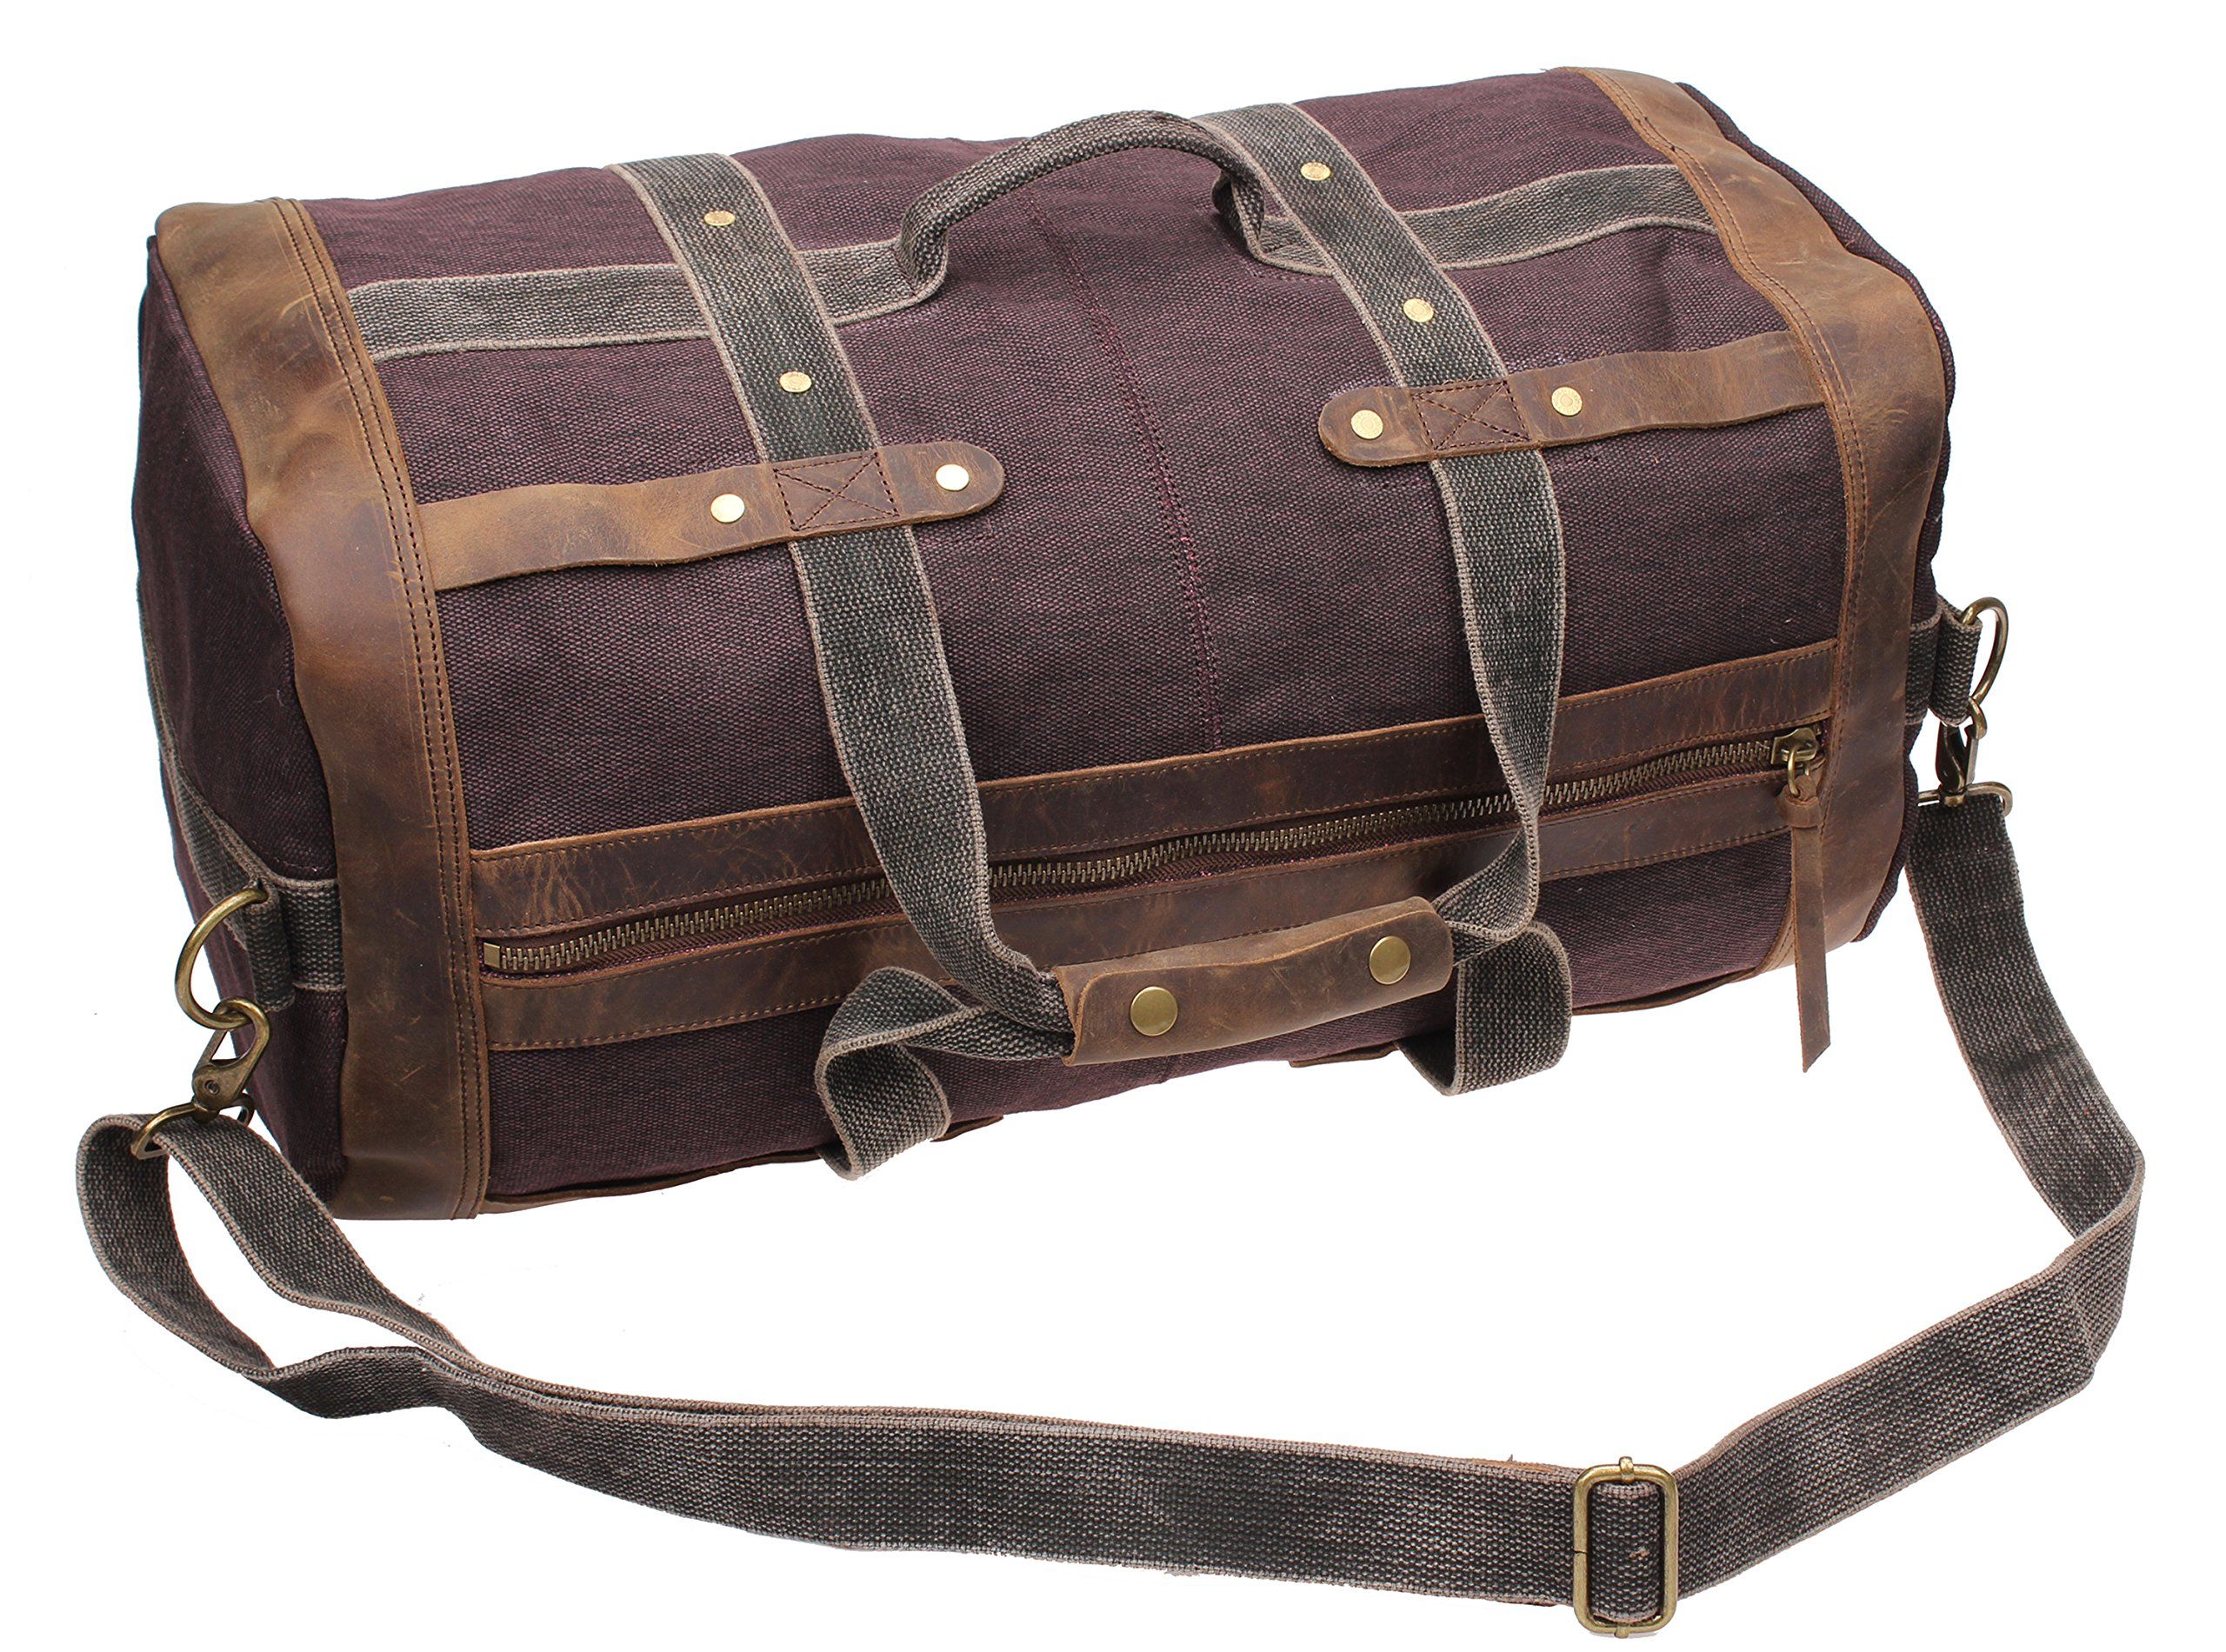 Iblue Weekend Bag Travel Duffel Bags For Men Canvas Carry On #B007(XL, coffee) by iblue (Image #4)